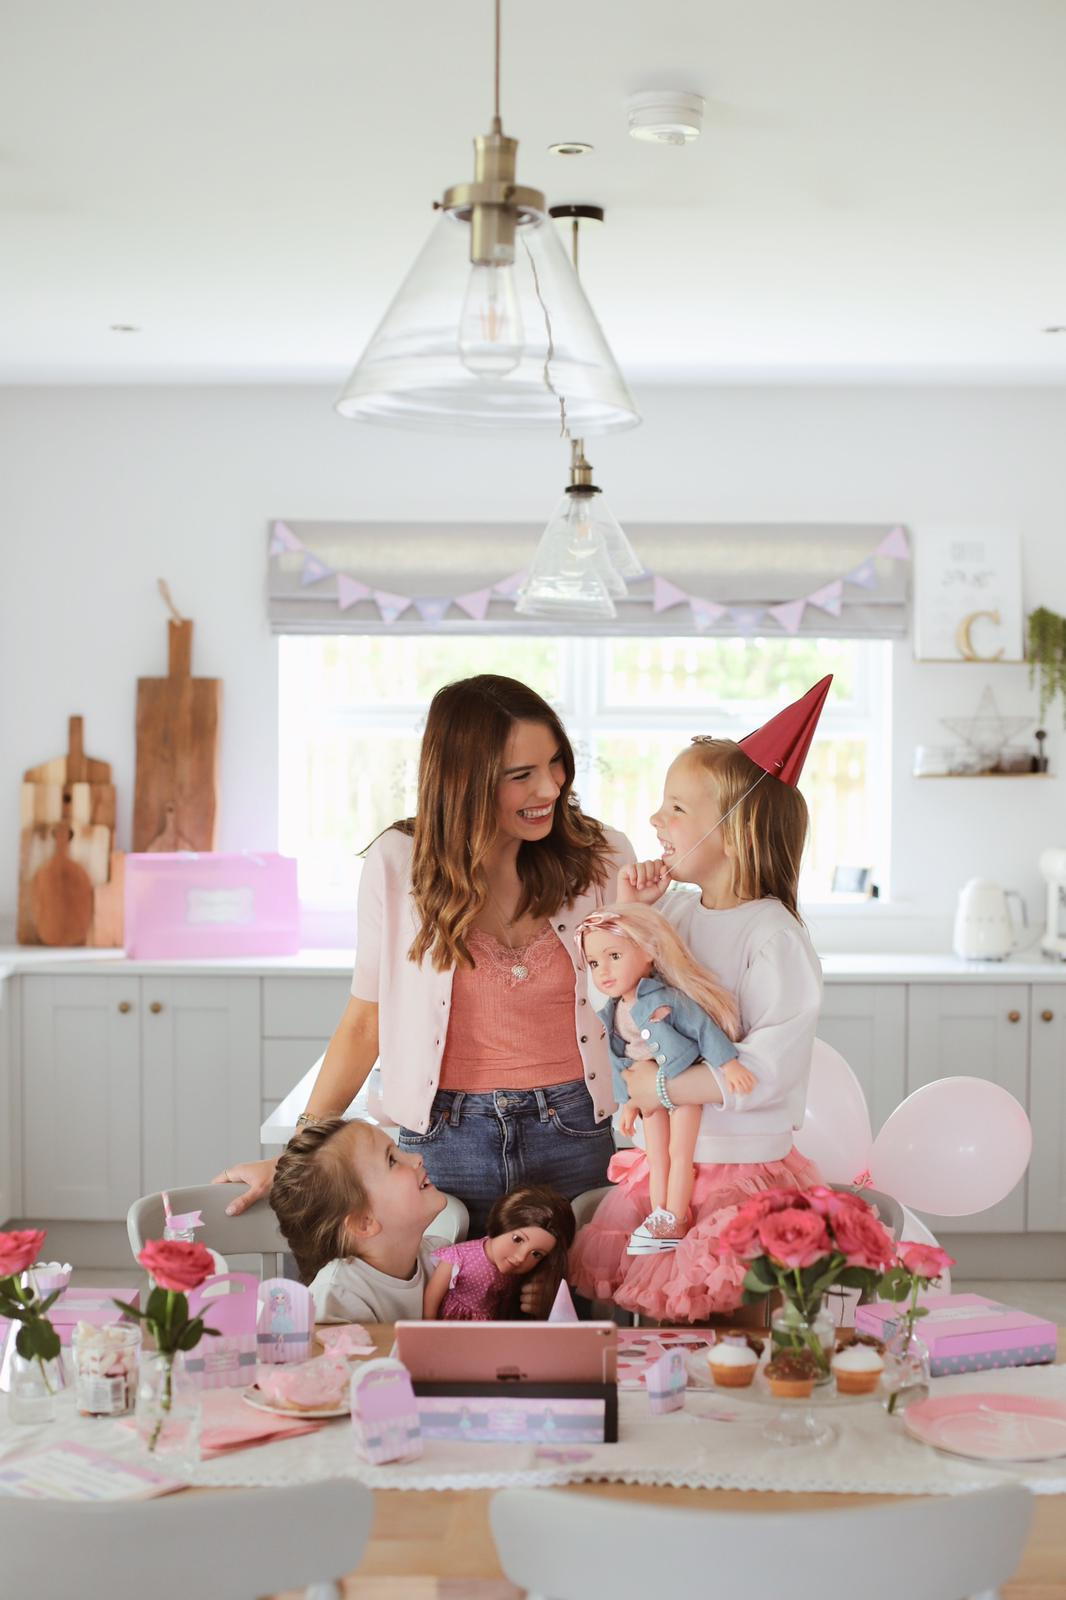 DesignaFriend are on a mission to ensure all children get the special birthday they deserve during lockdown with free downloadable birthday packs full of fun activities, games and decorations